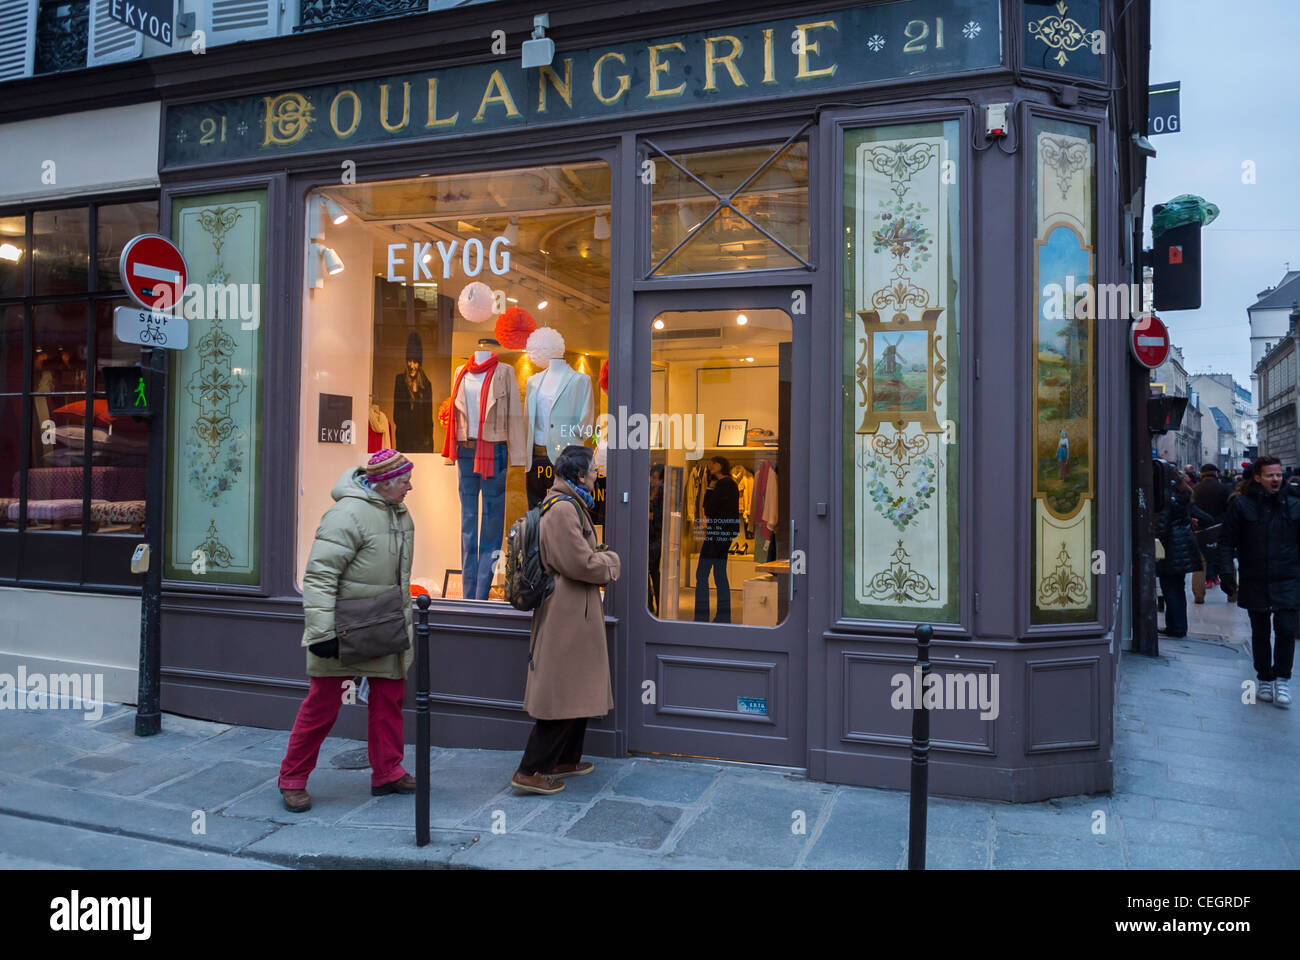 Paris france women window shopping in le marais district ekyog stock phot - Paris shopping boutiques ...